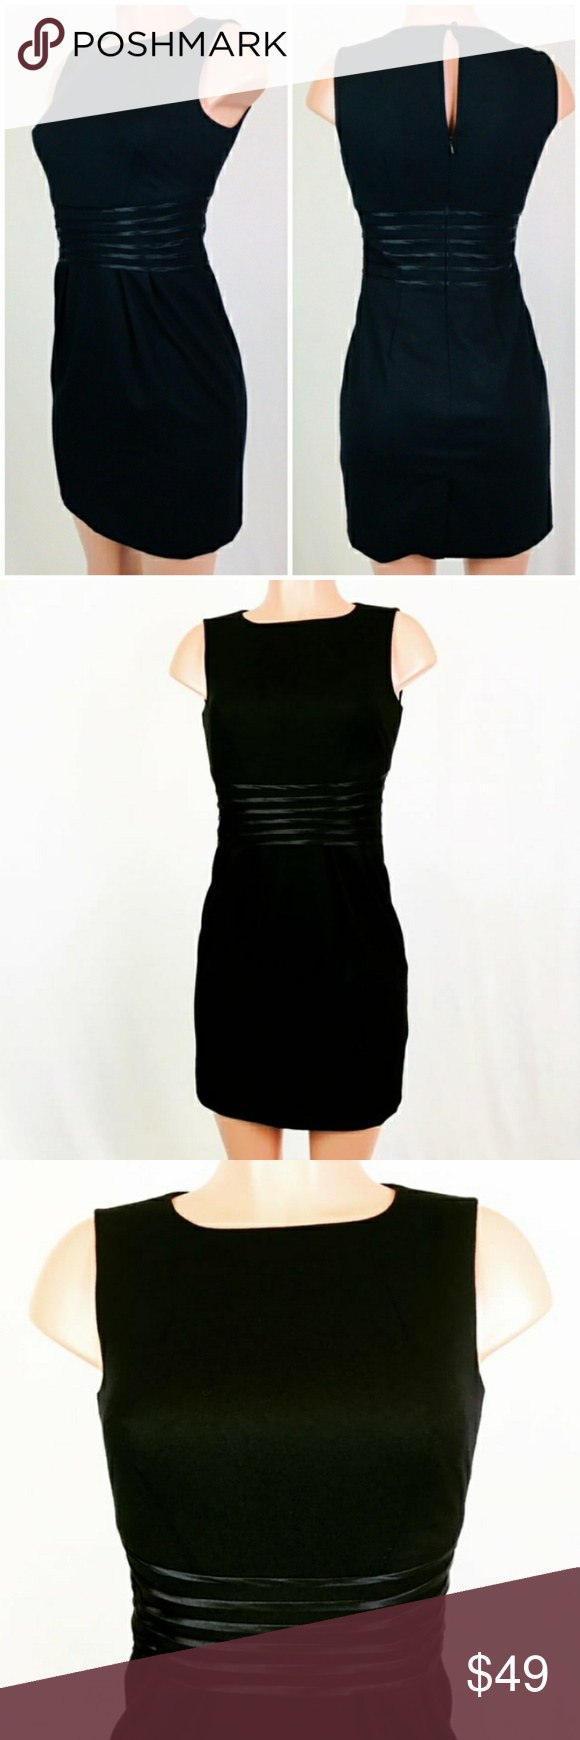 New Banana Republic dress sz 2P black color New Banana Republic dress women's sz 2P black color.   Approximate flat extended measures:  Armpit to armpit 17.5  Waist 14    Length 33 from shoulder.    Condition: Brand New. New. In excellent.    Smoke free home.    0232 Banana Republic Dresses Midi #blacksleevelessdress